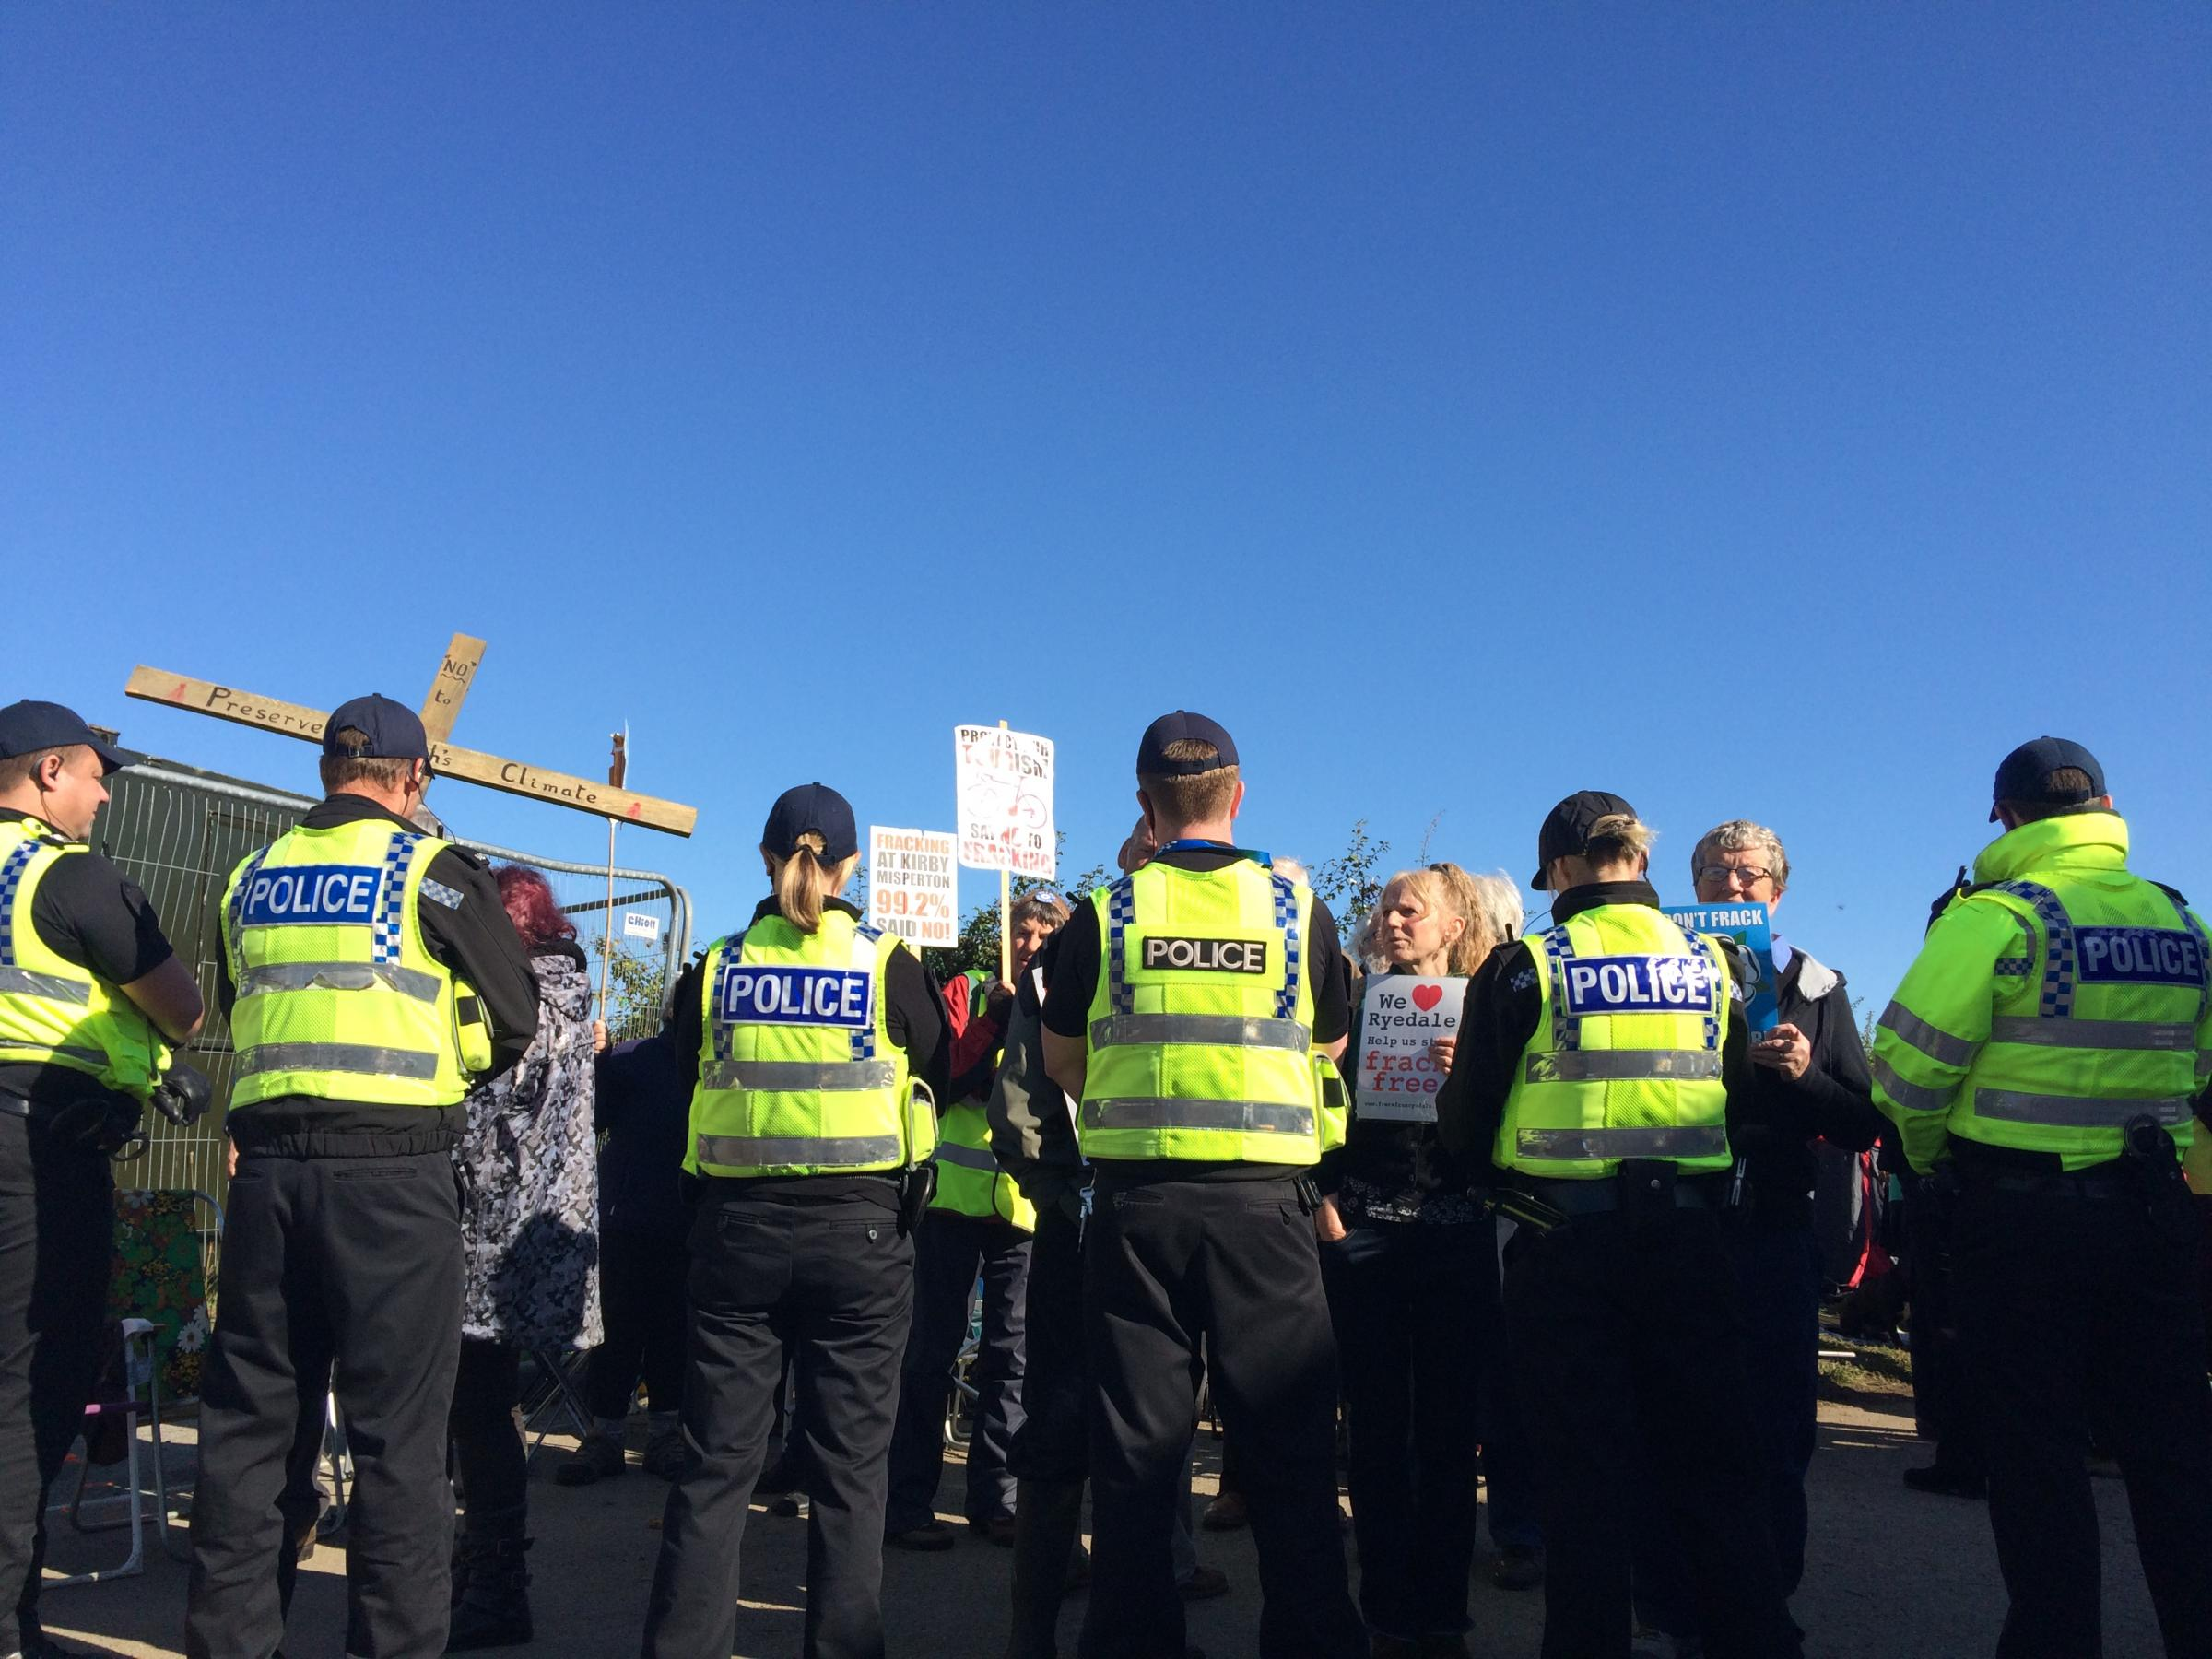 Road re-opened after protesters released from 'lock-on' device